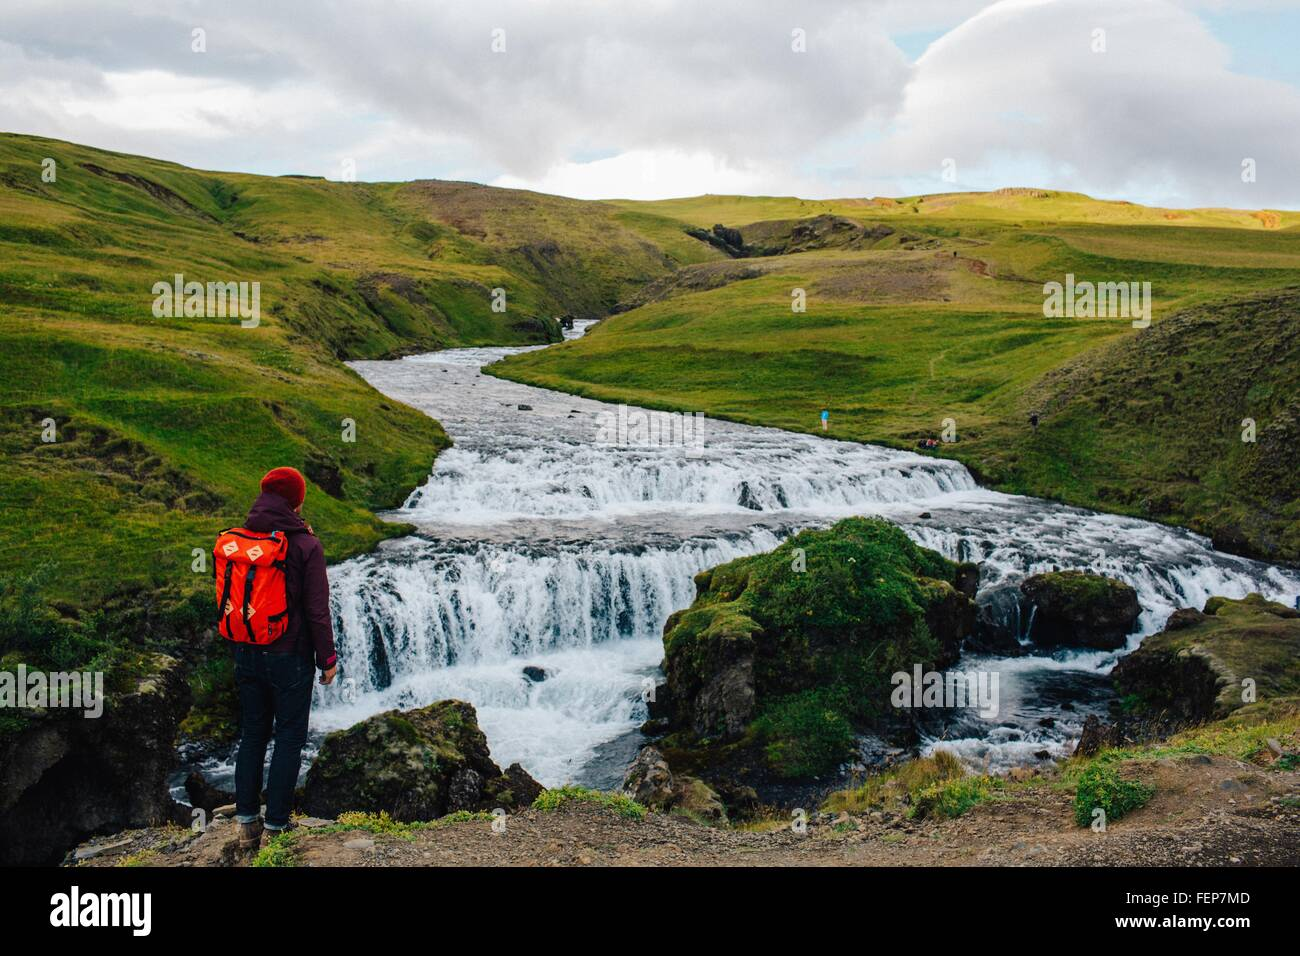 Rear view of mid adult man looking at river flowing through lush green landscape, Iceland Stock Photo